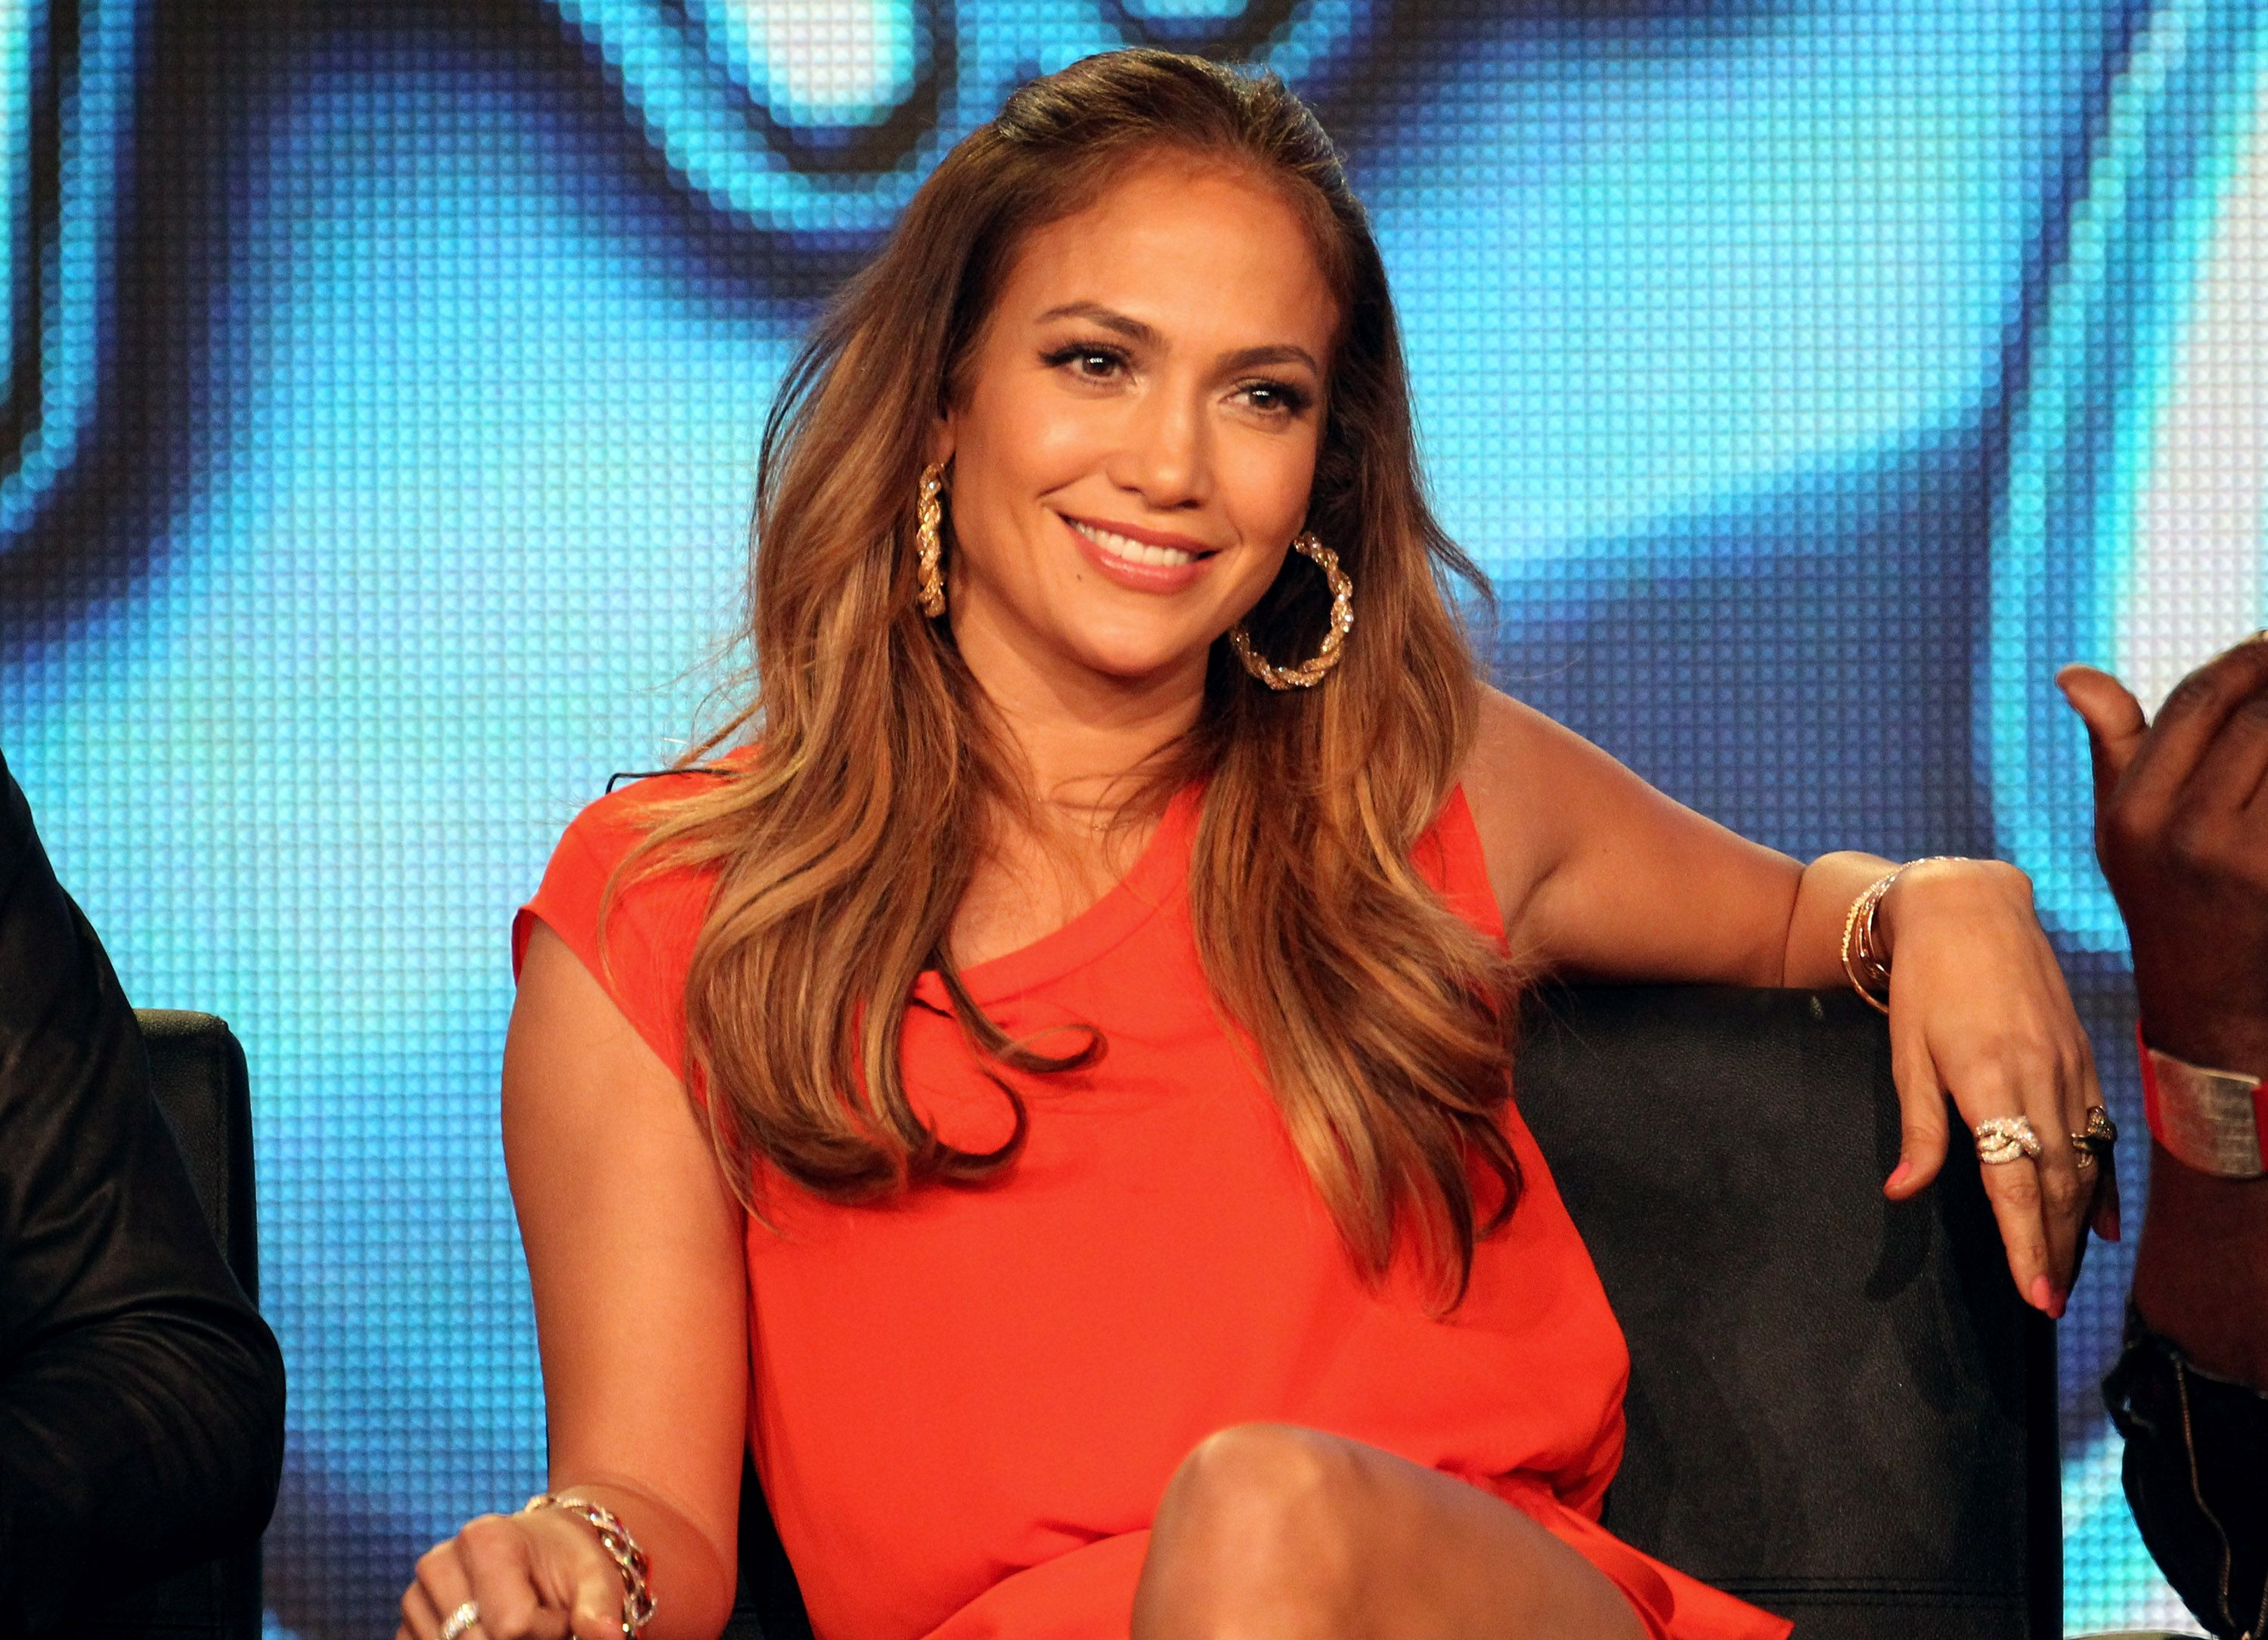 Jennifer Lopez on the 'American Idol' panel during the FOX Broadcasting Company portion of the 2012 Winter TCA Tour at The Langham Huntington Hotel and Spa on January 8, 2012 | Photo: Getty Images